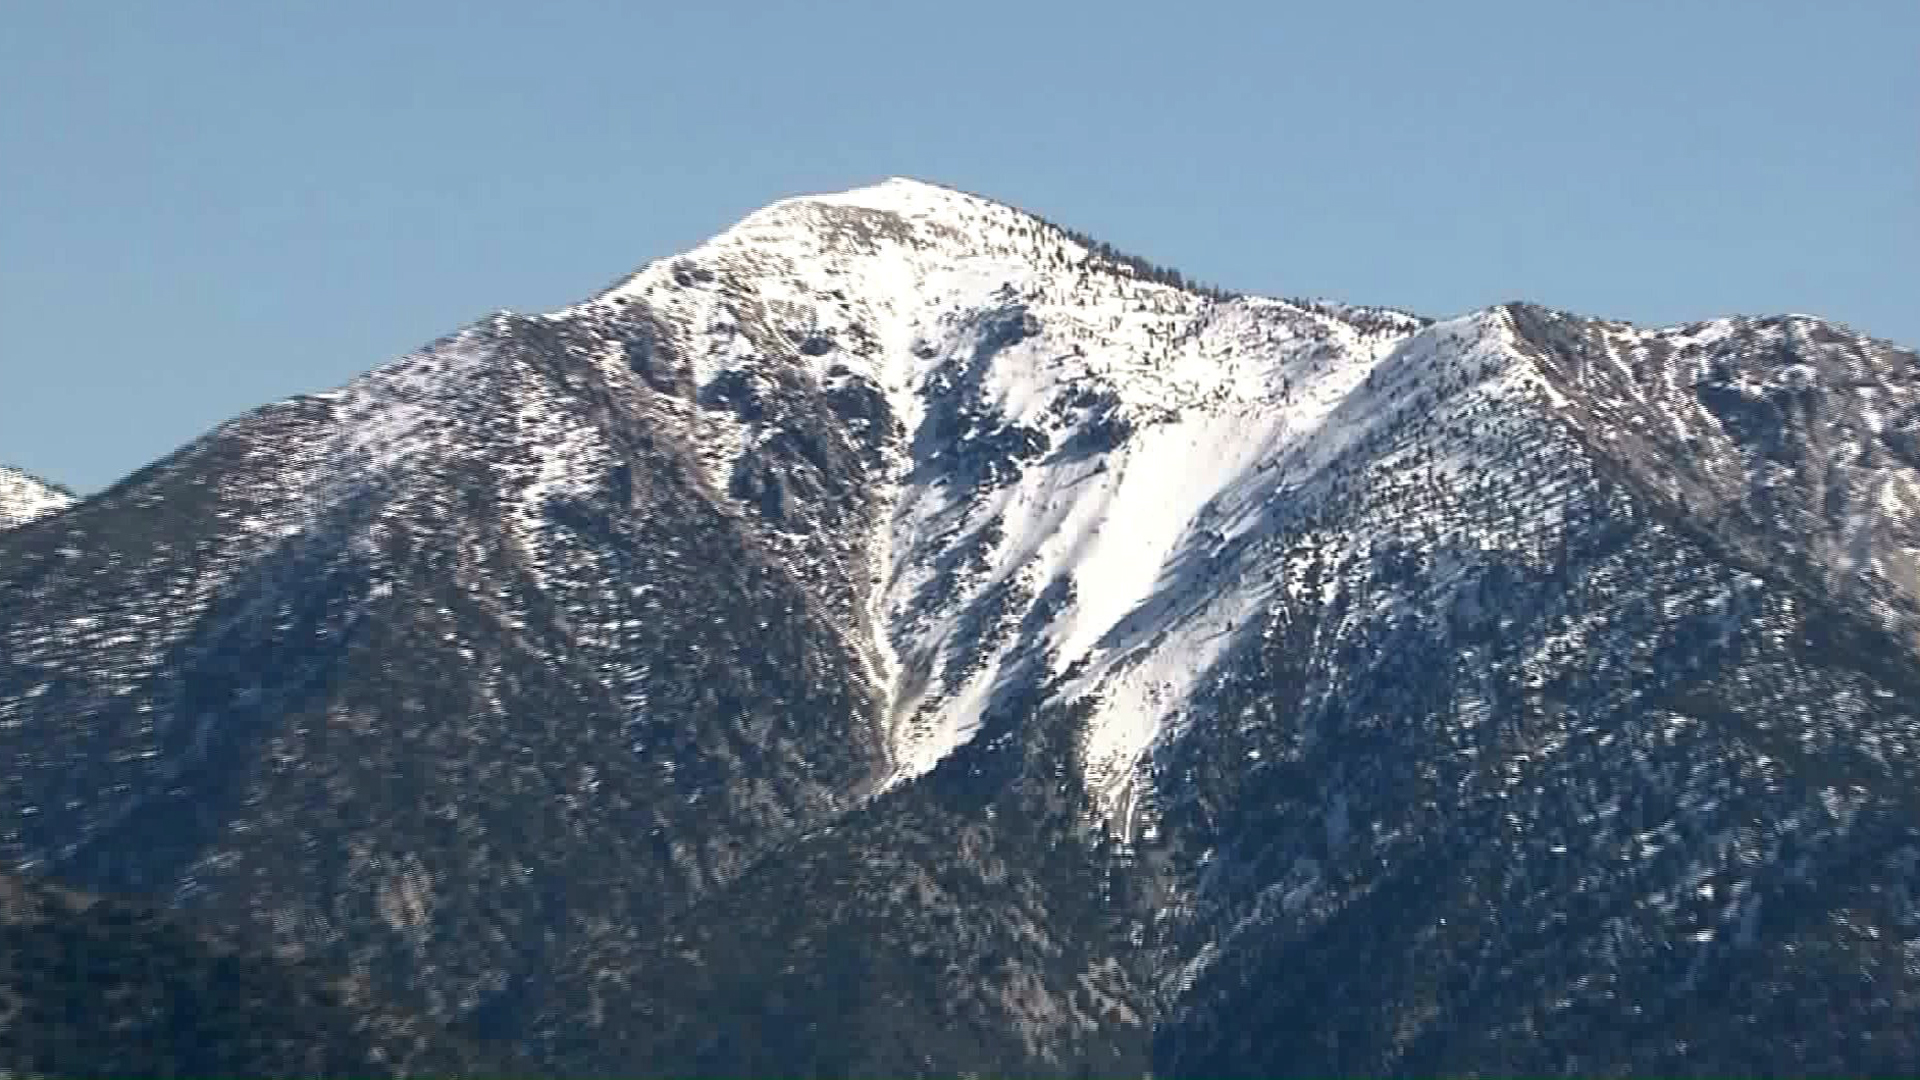 10,064-fooet Mt. Baldy on Feb. 8th, 2016.  photo:  KTLA